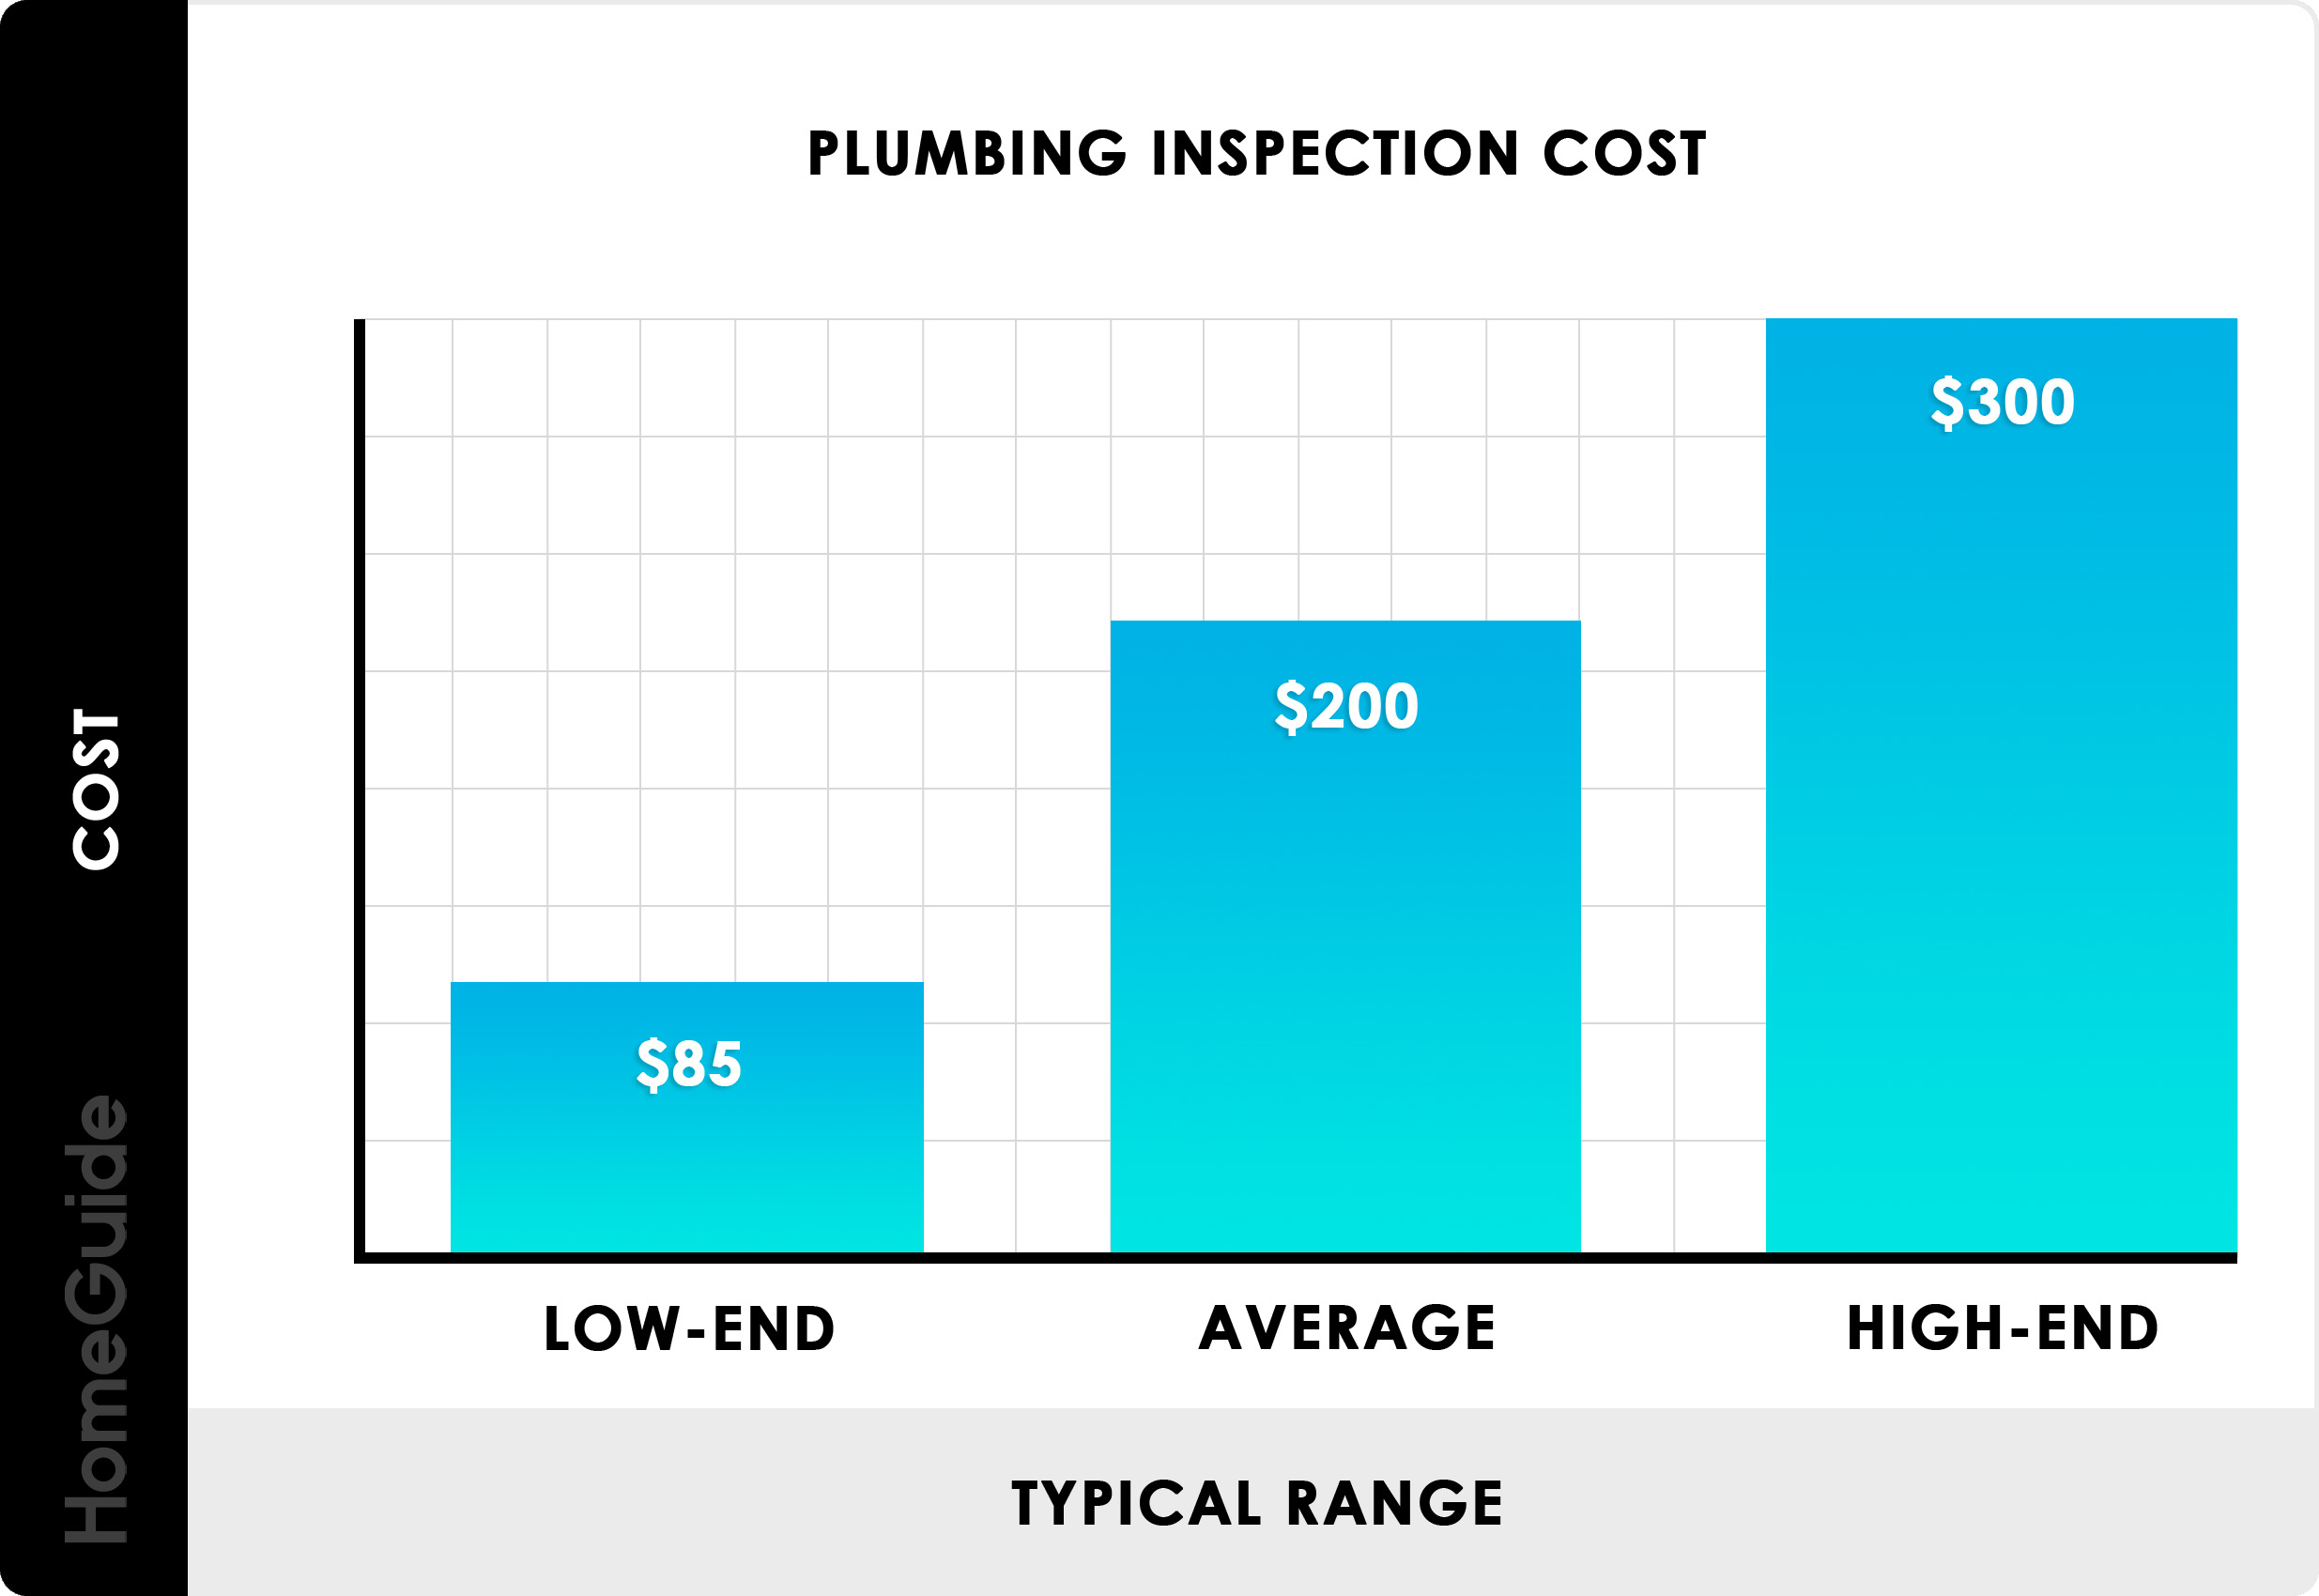 2019 Plumbing Cost Estimates | Average Leaks, Pipe Repairs